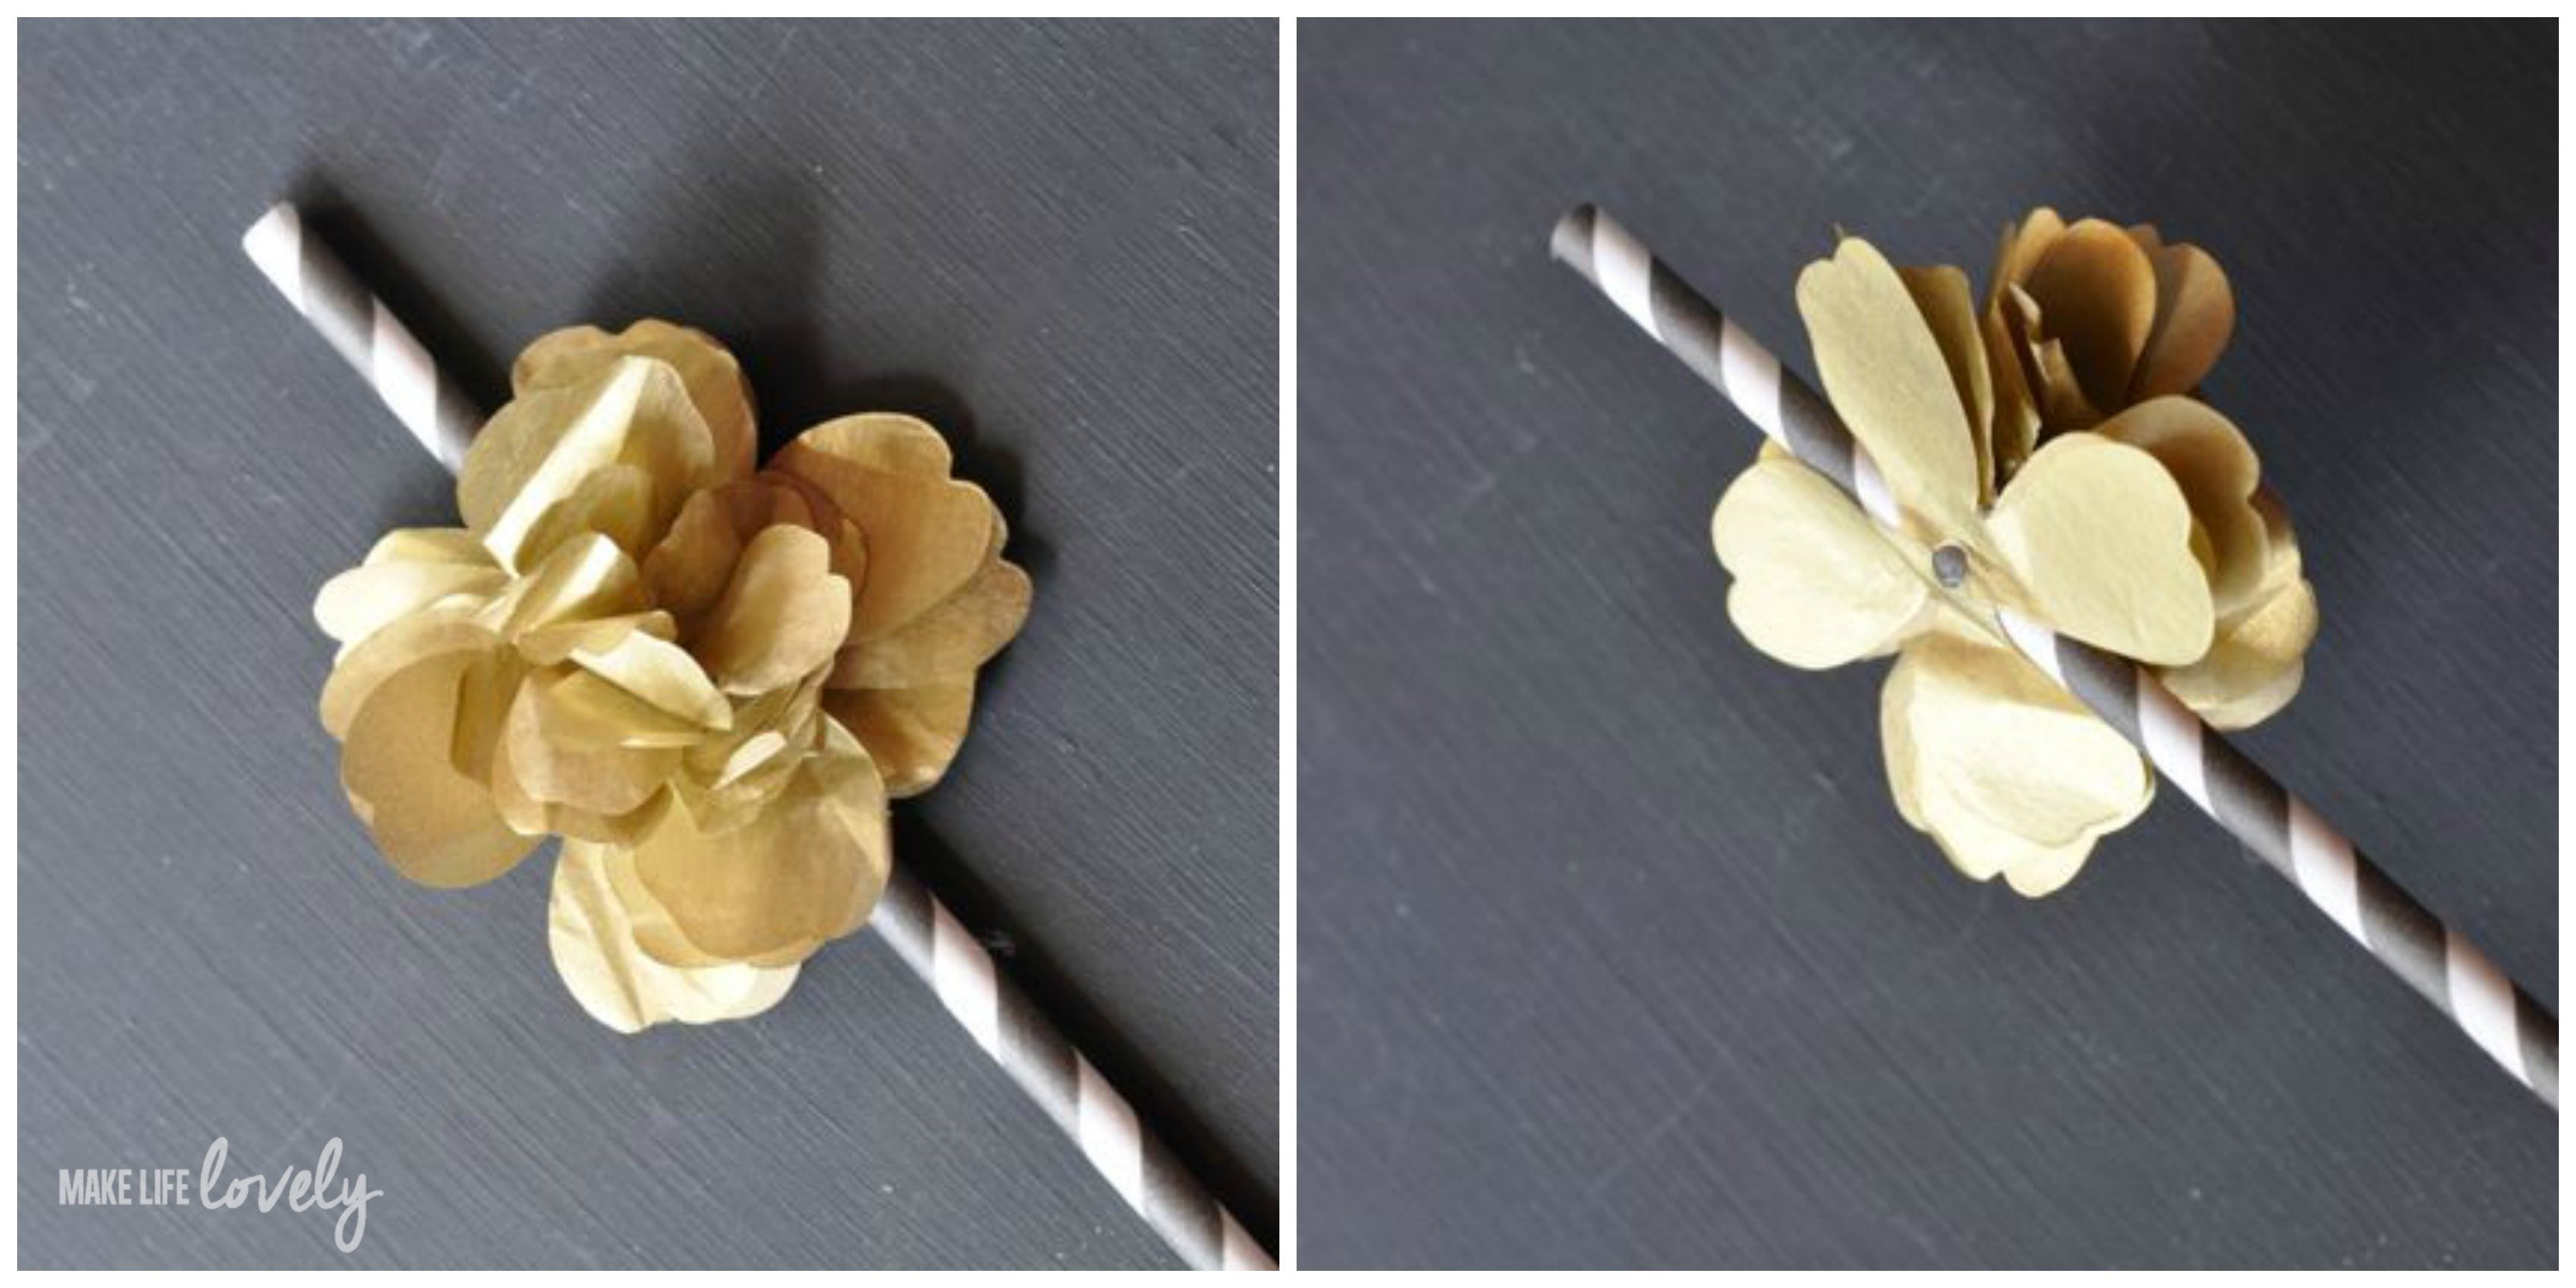 Diy Flower Straws For A Party Make Life Lovely